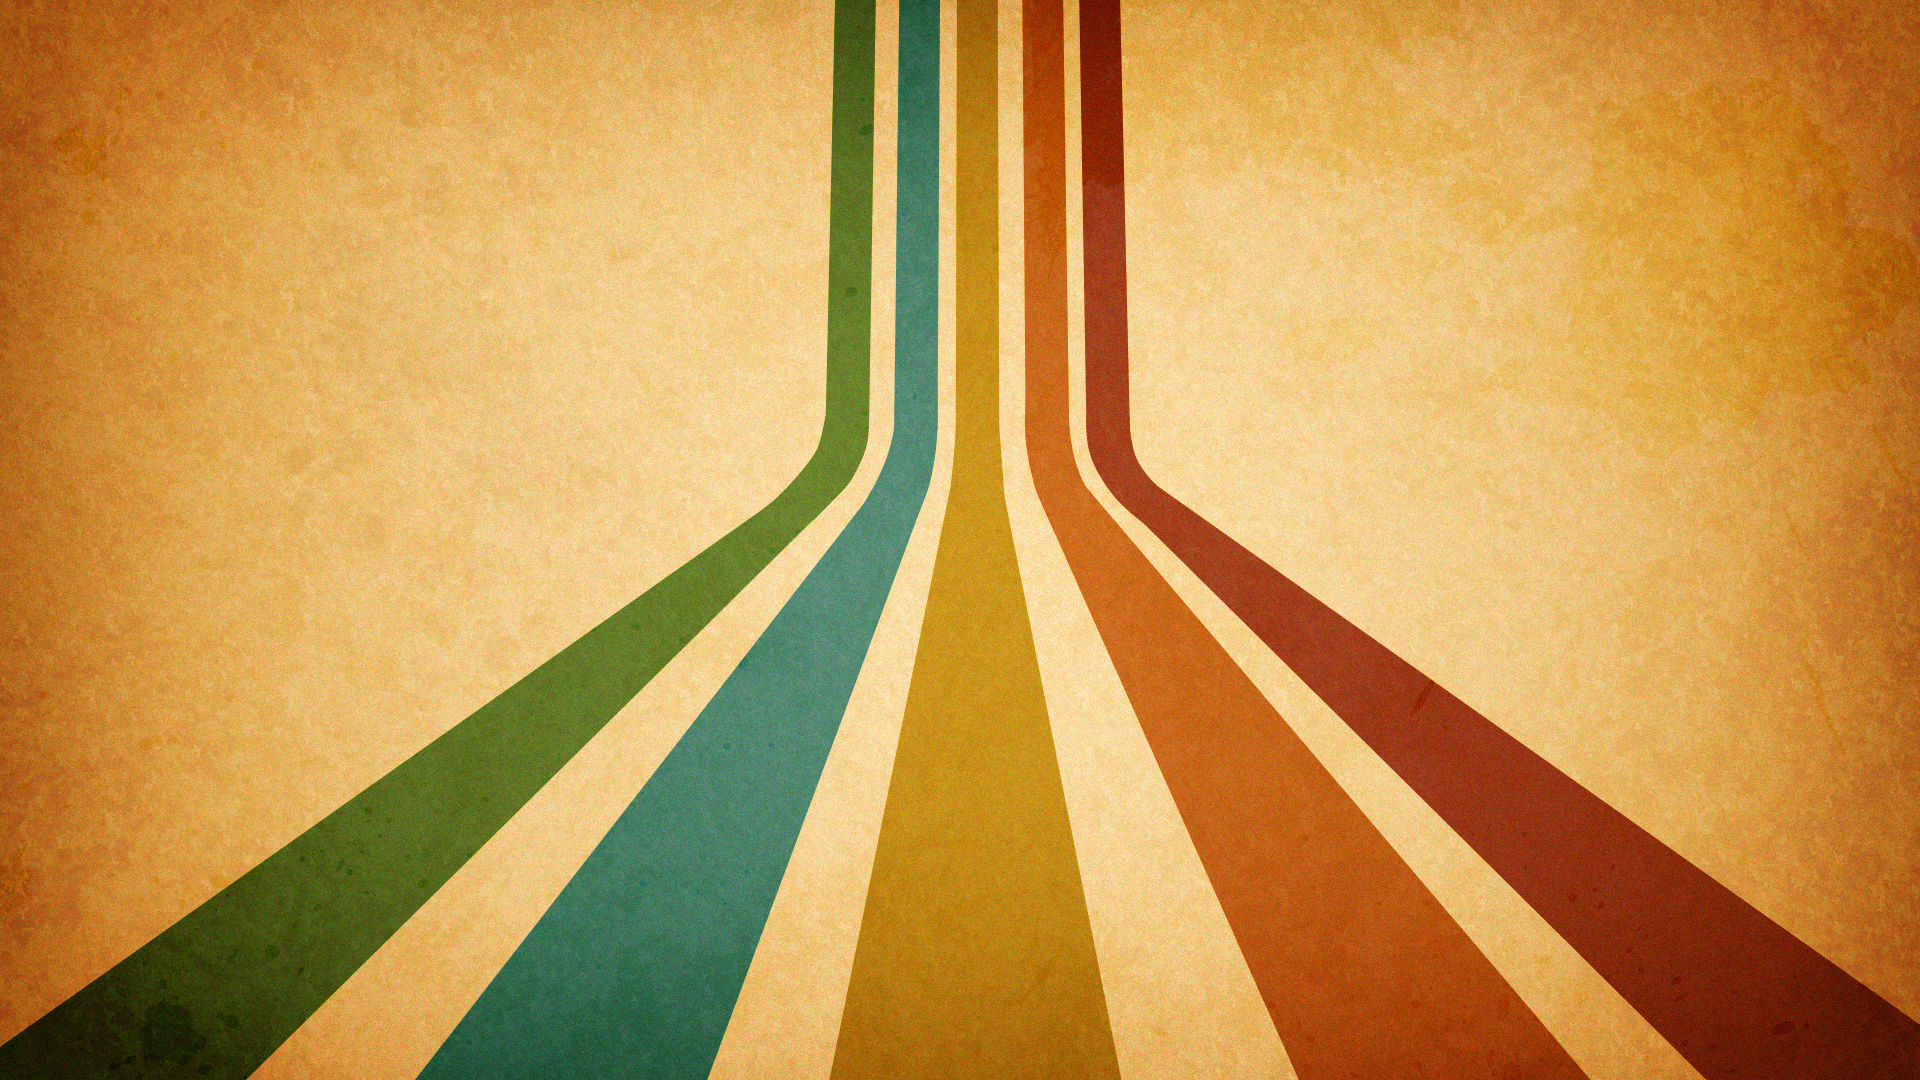 Retro Wallpaper Free Downloads